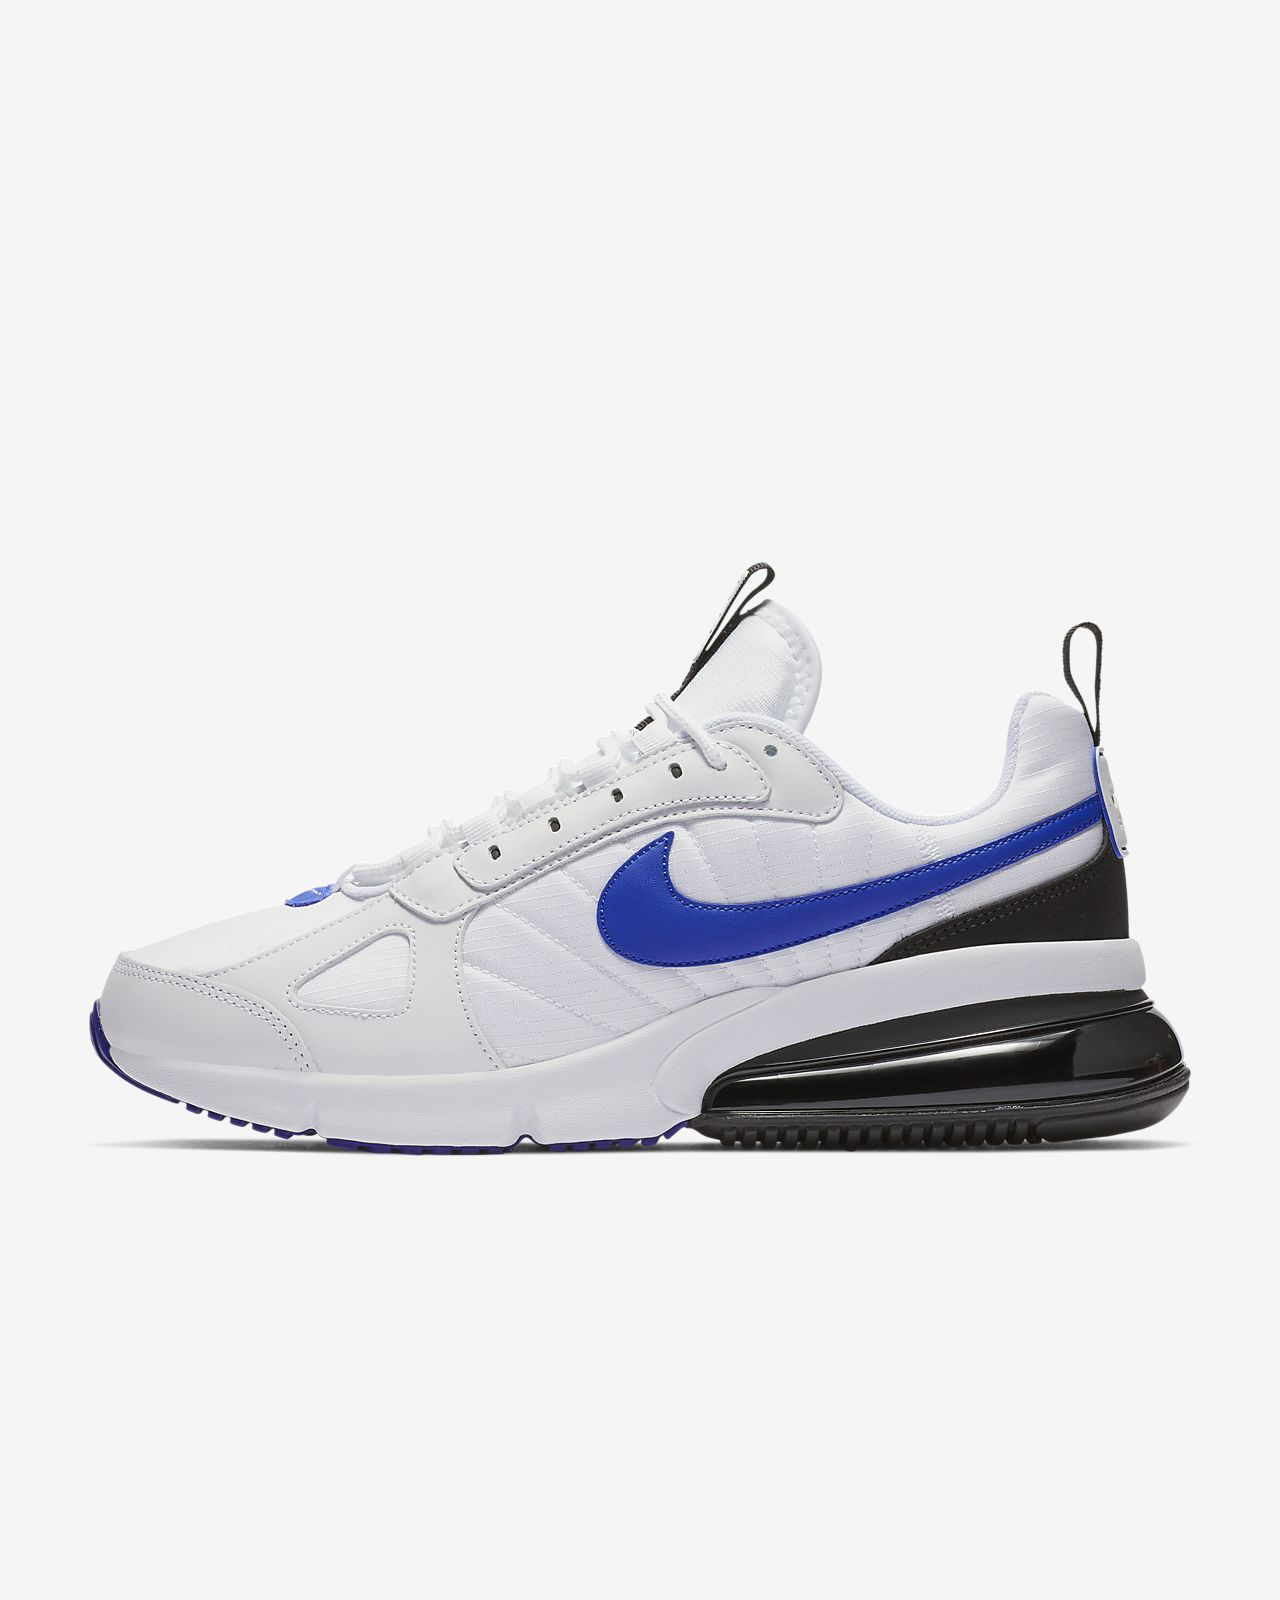 finest selection 425aa 9b098 ... Chaussure Nike Air Max 270 Futura pour Homme